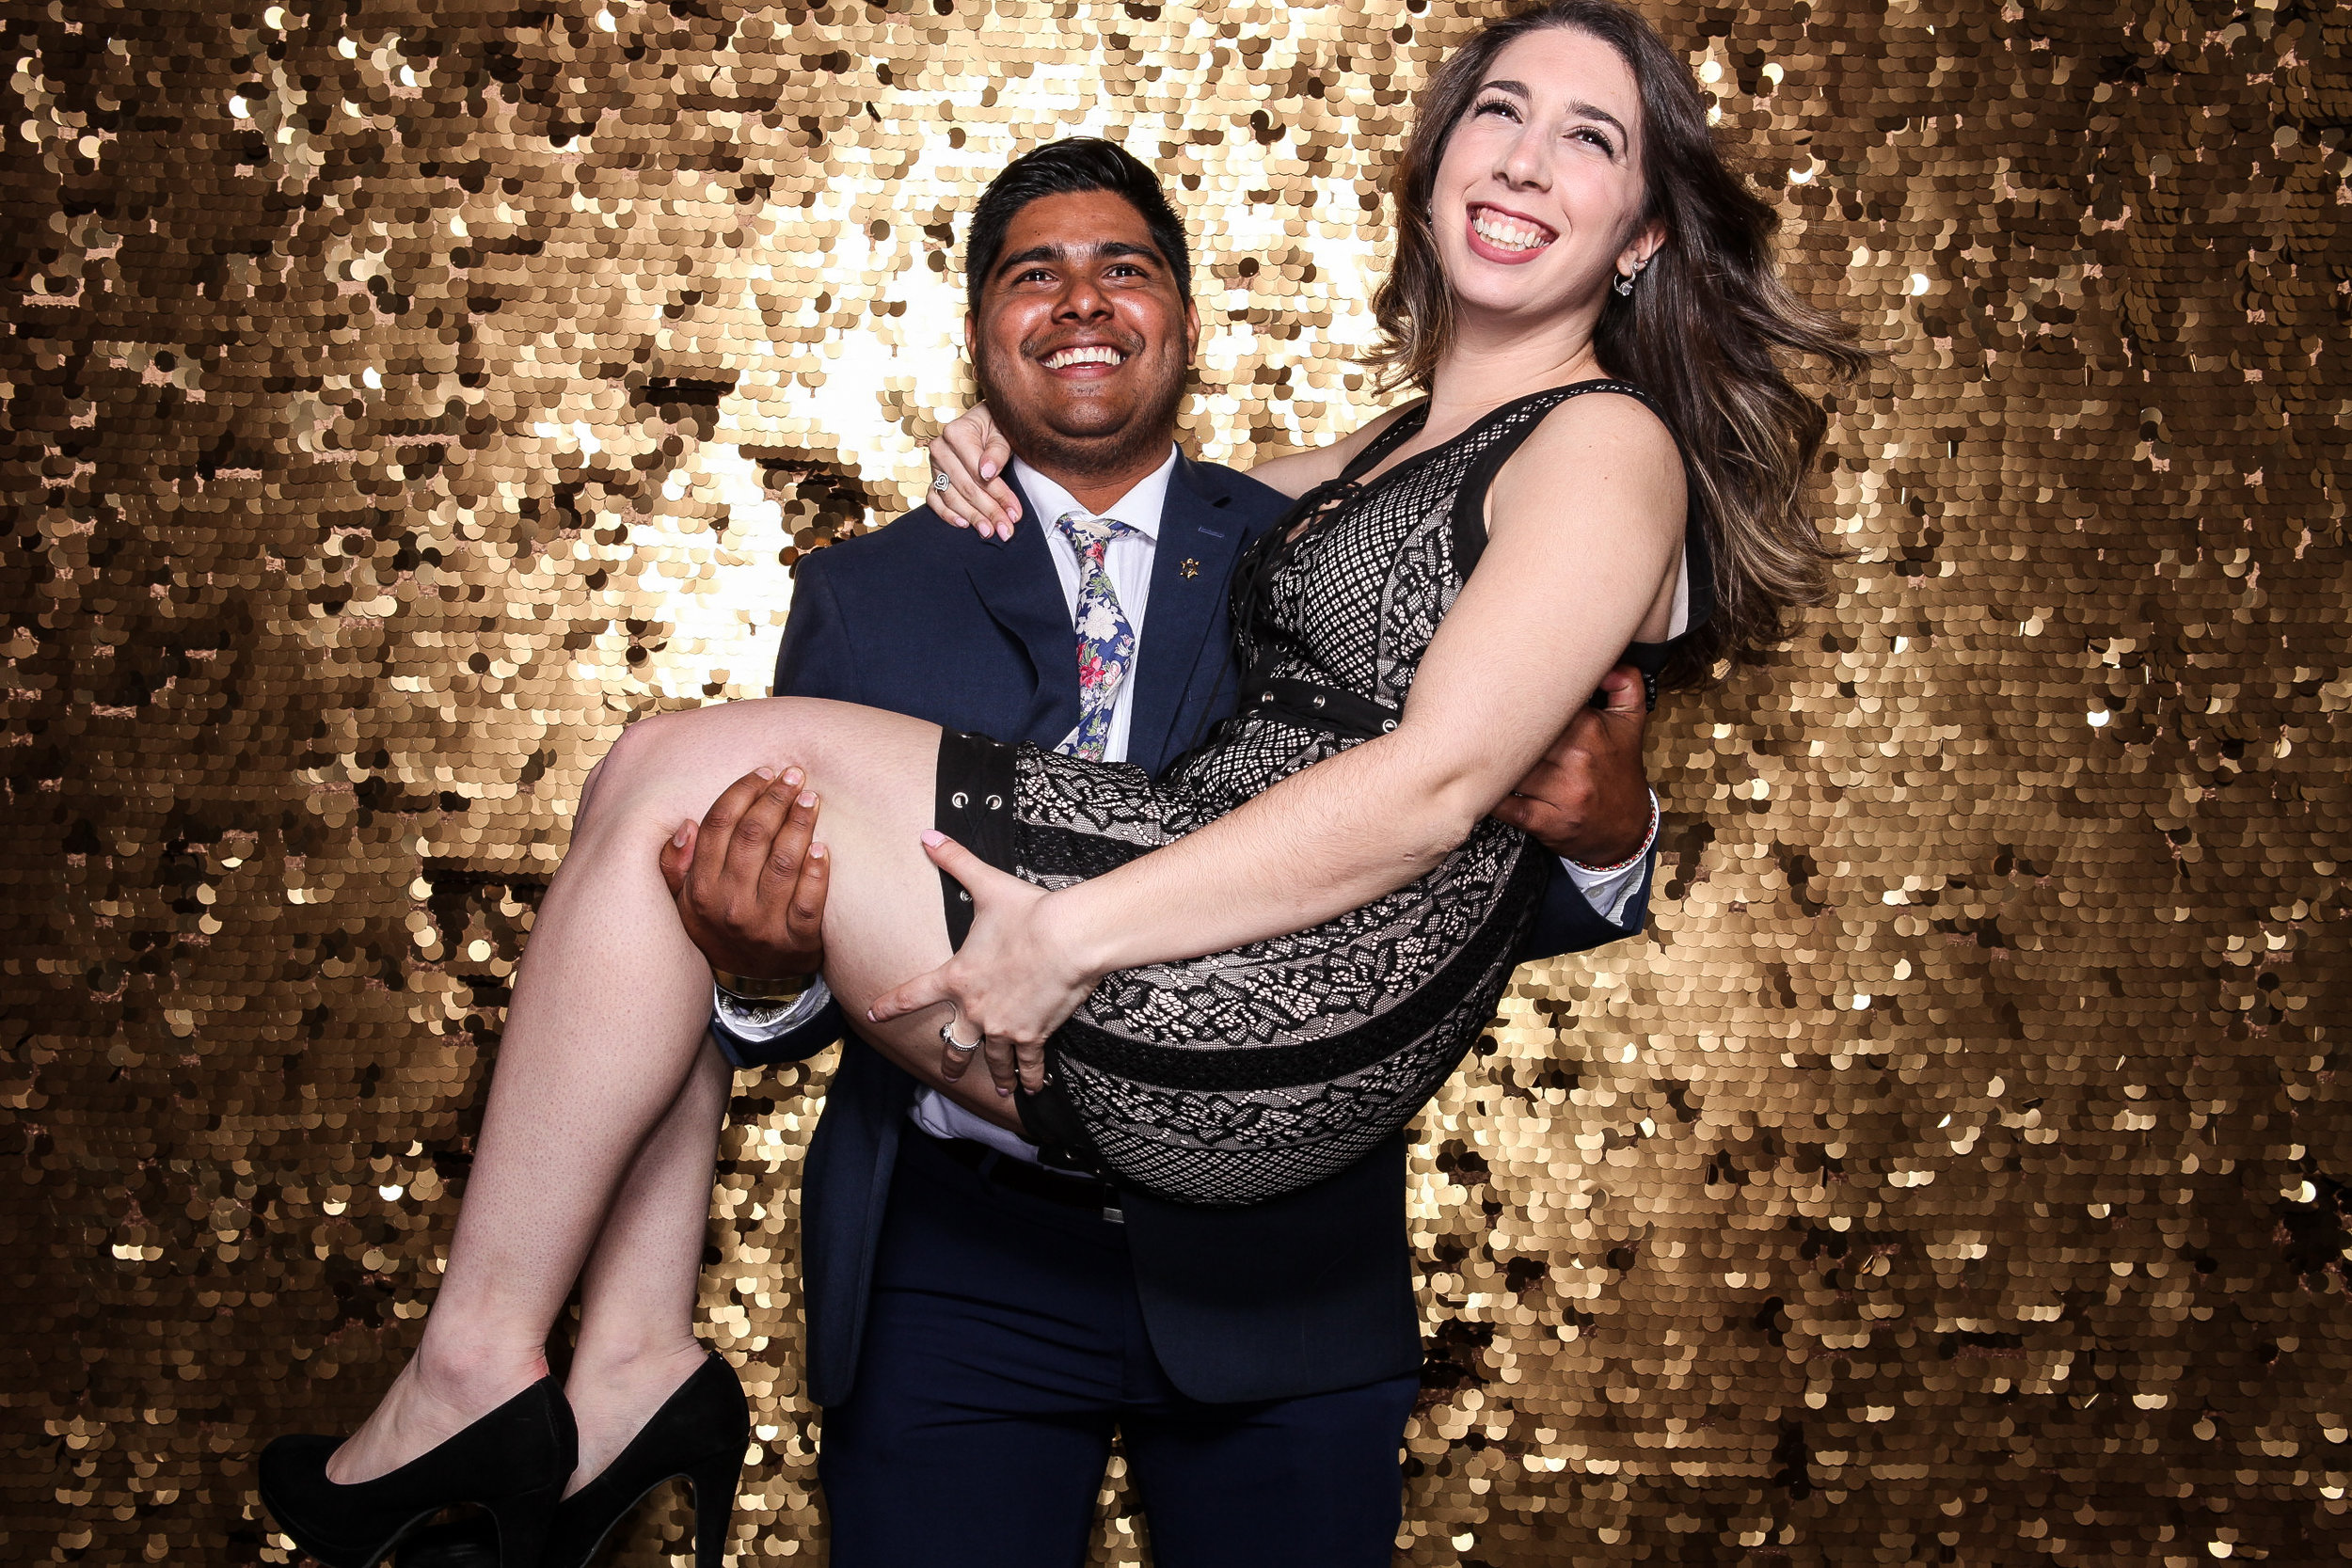 20190503_Adelphi_Senior_Formal-132.jpg